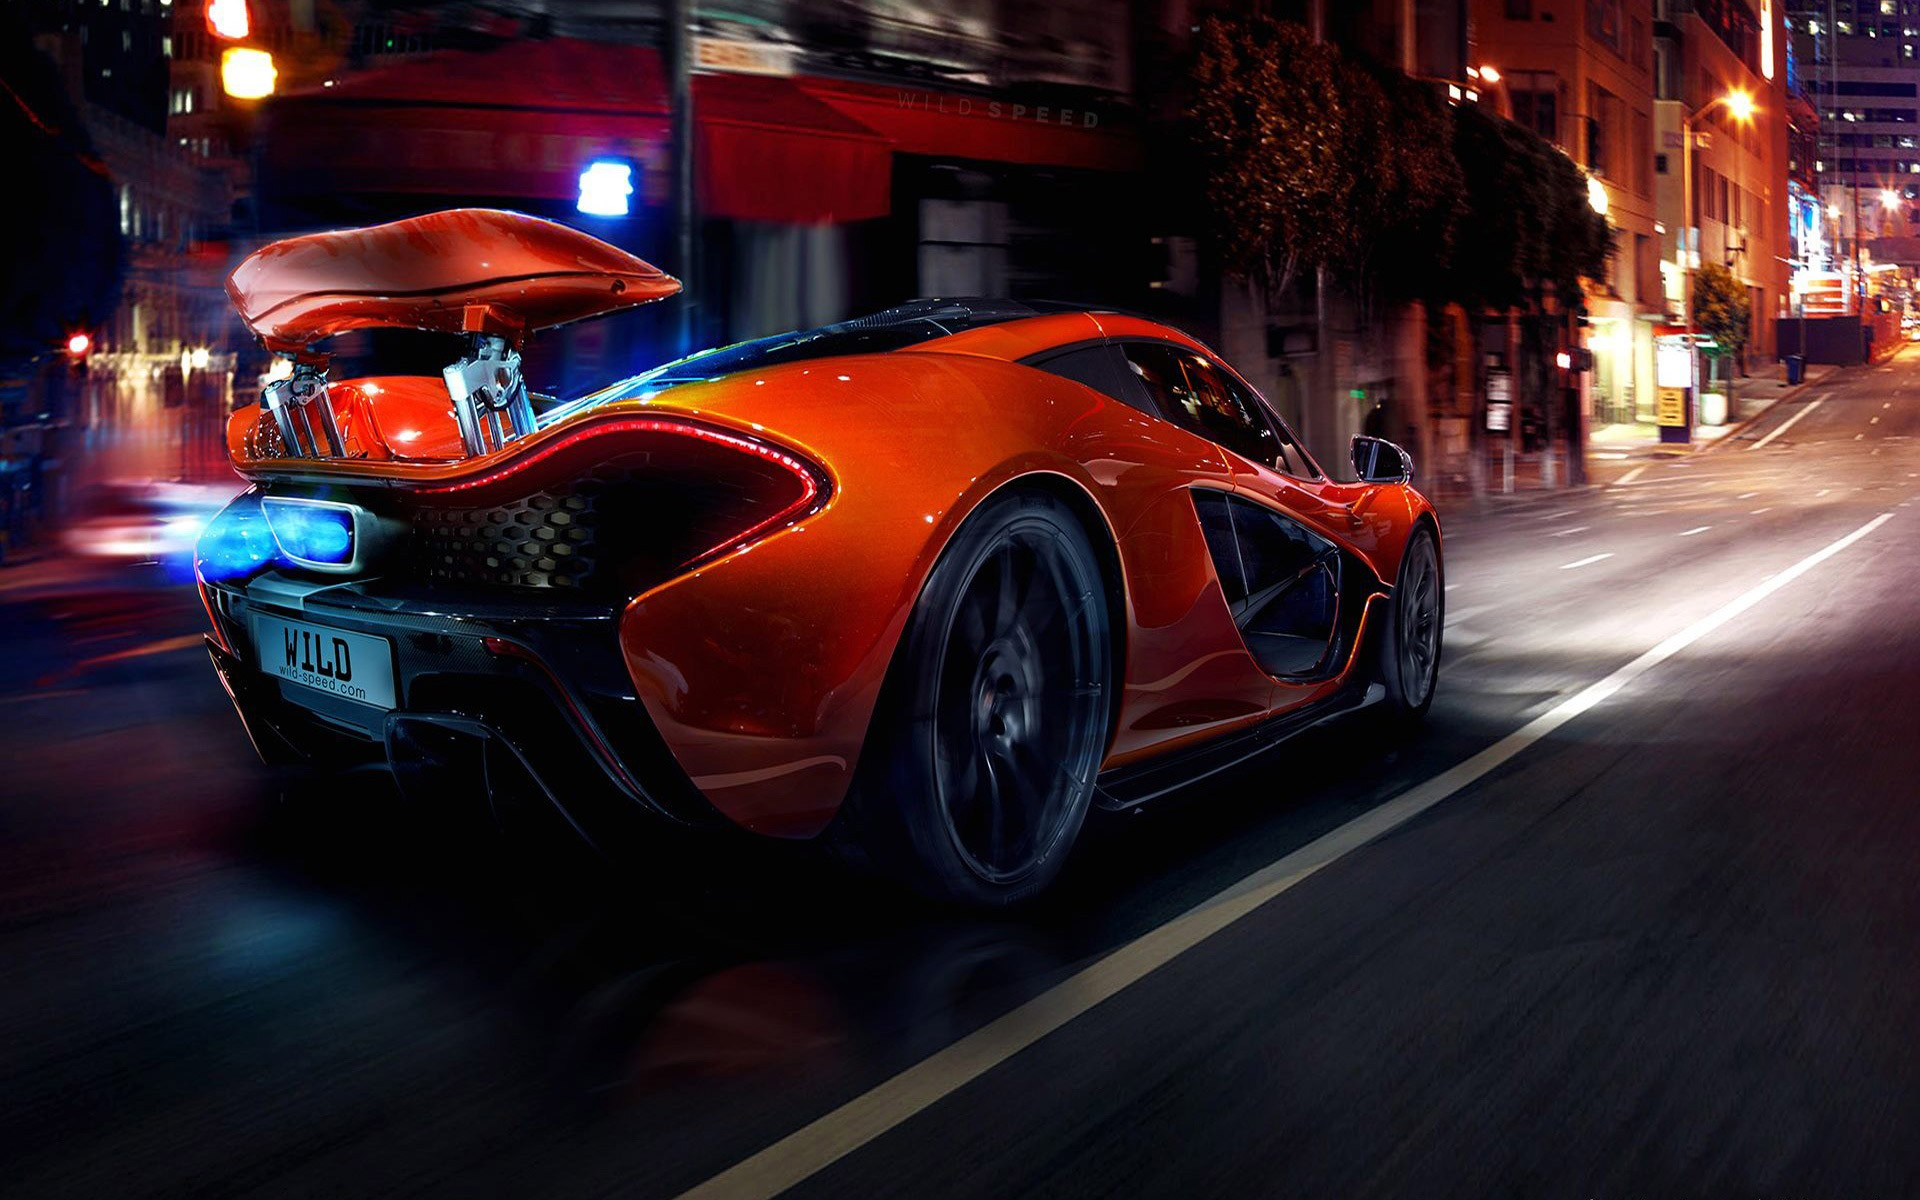 Car Pictures Wallpaper Net Speed Need For Speed Sports Cars Sports Car Video Games